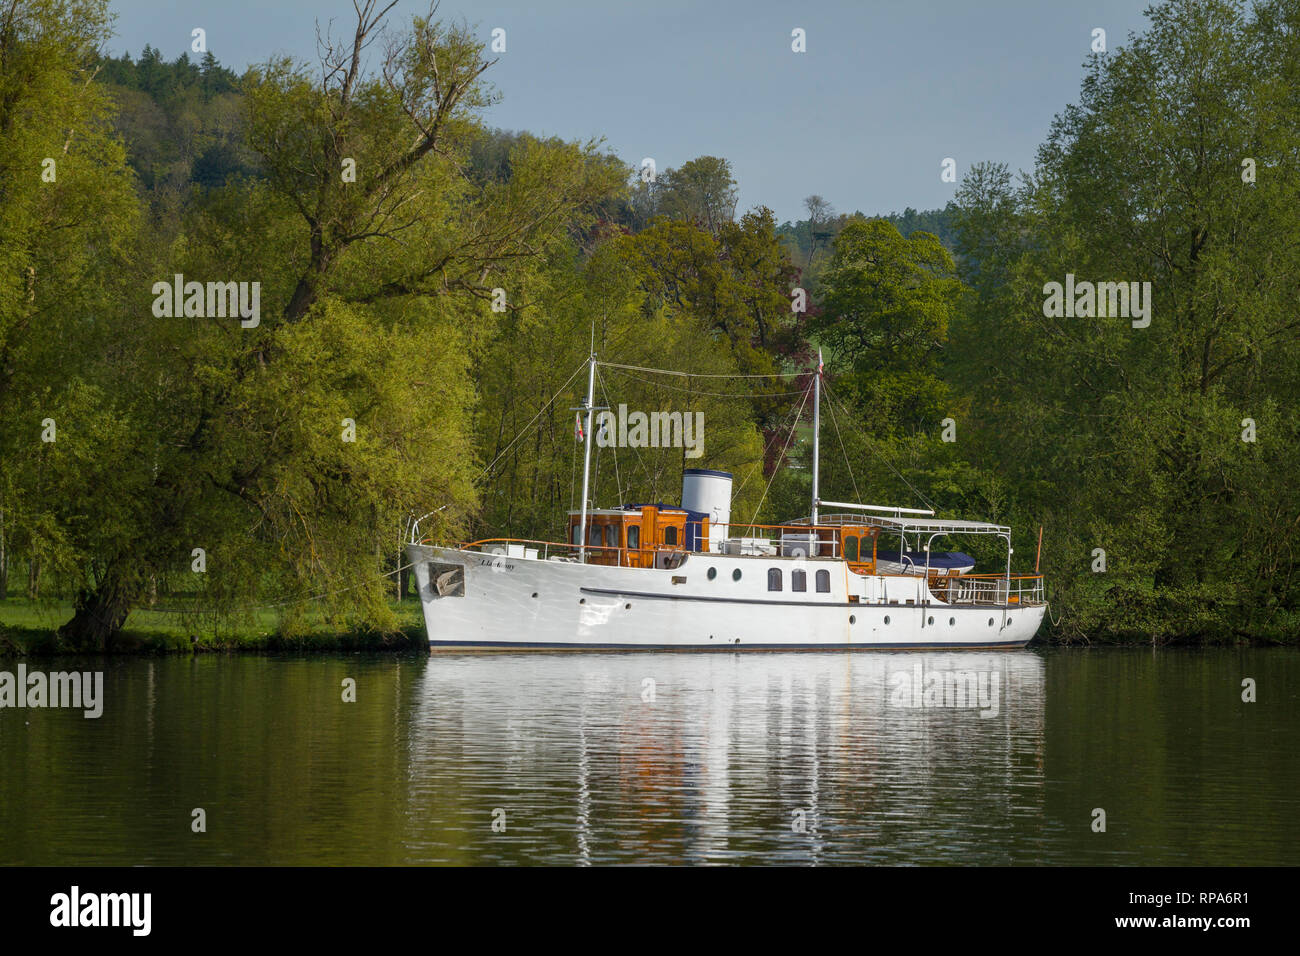 The Llanthony, a restored Dunkirk Little Ship moored on the Thames near Hambleden, Buckinghamshire. - Stock Image